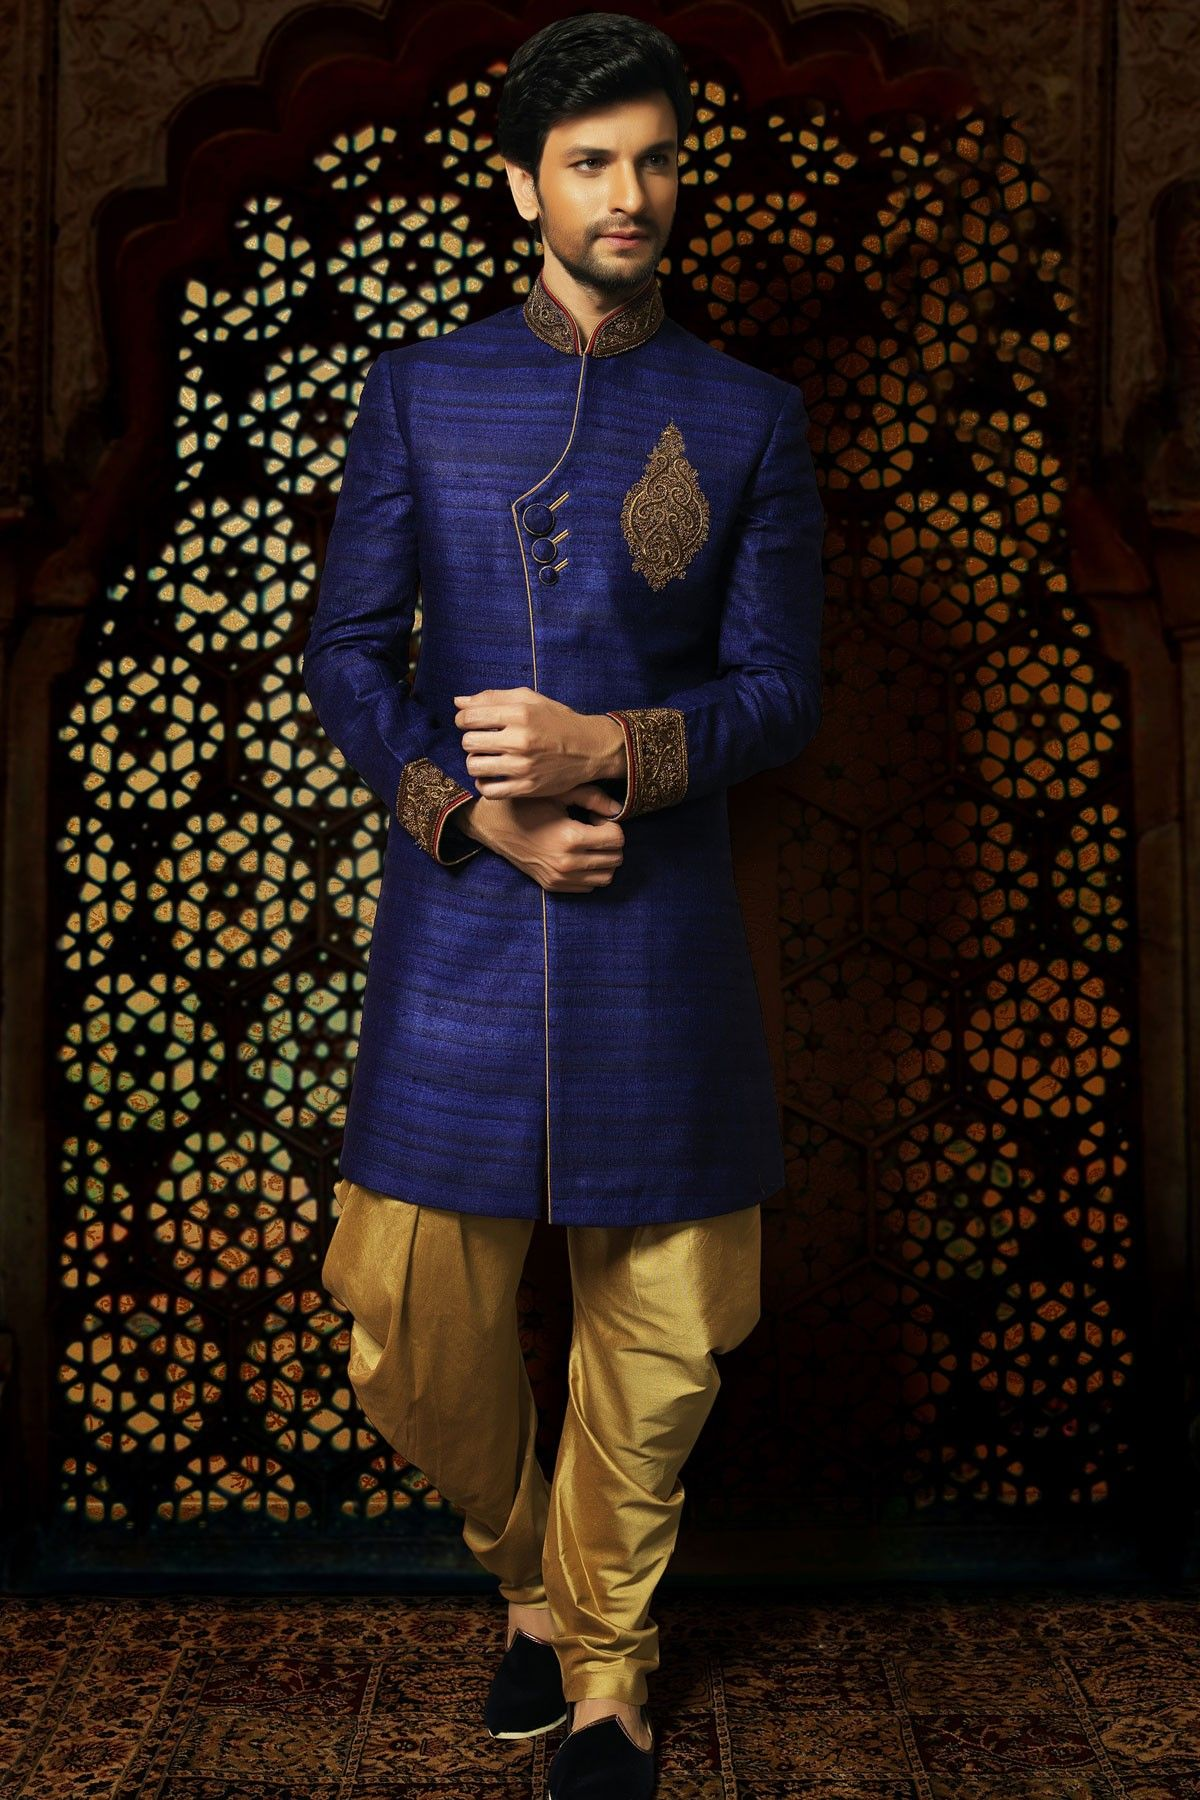 Samayakk Royal Blue & Golden Sherwani Samayakk,